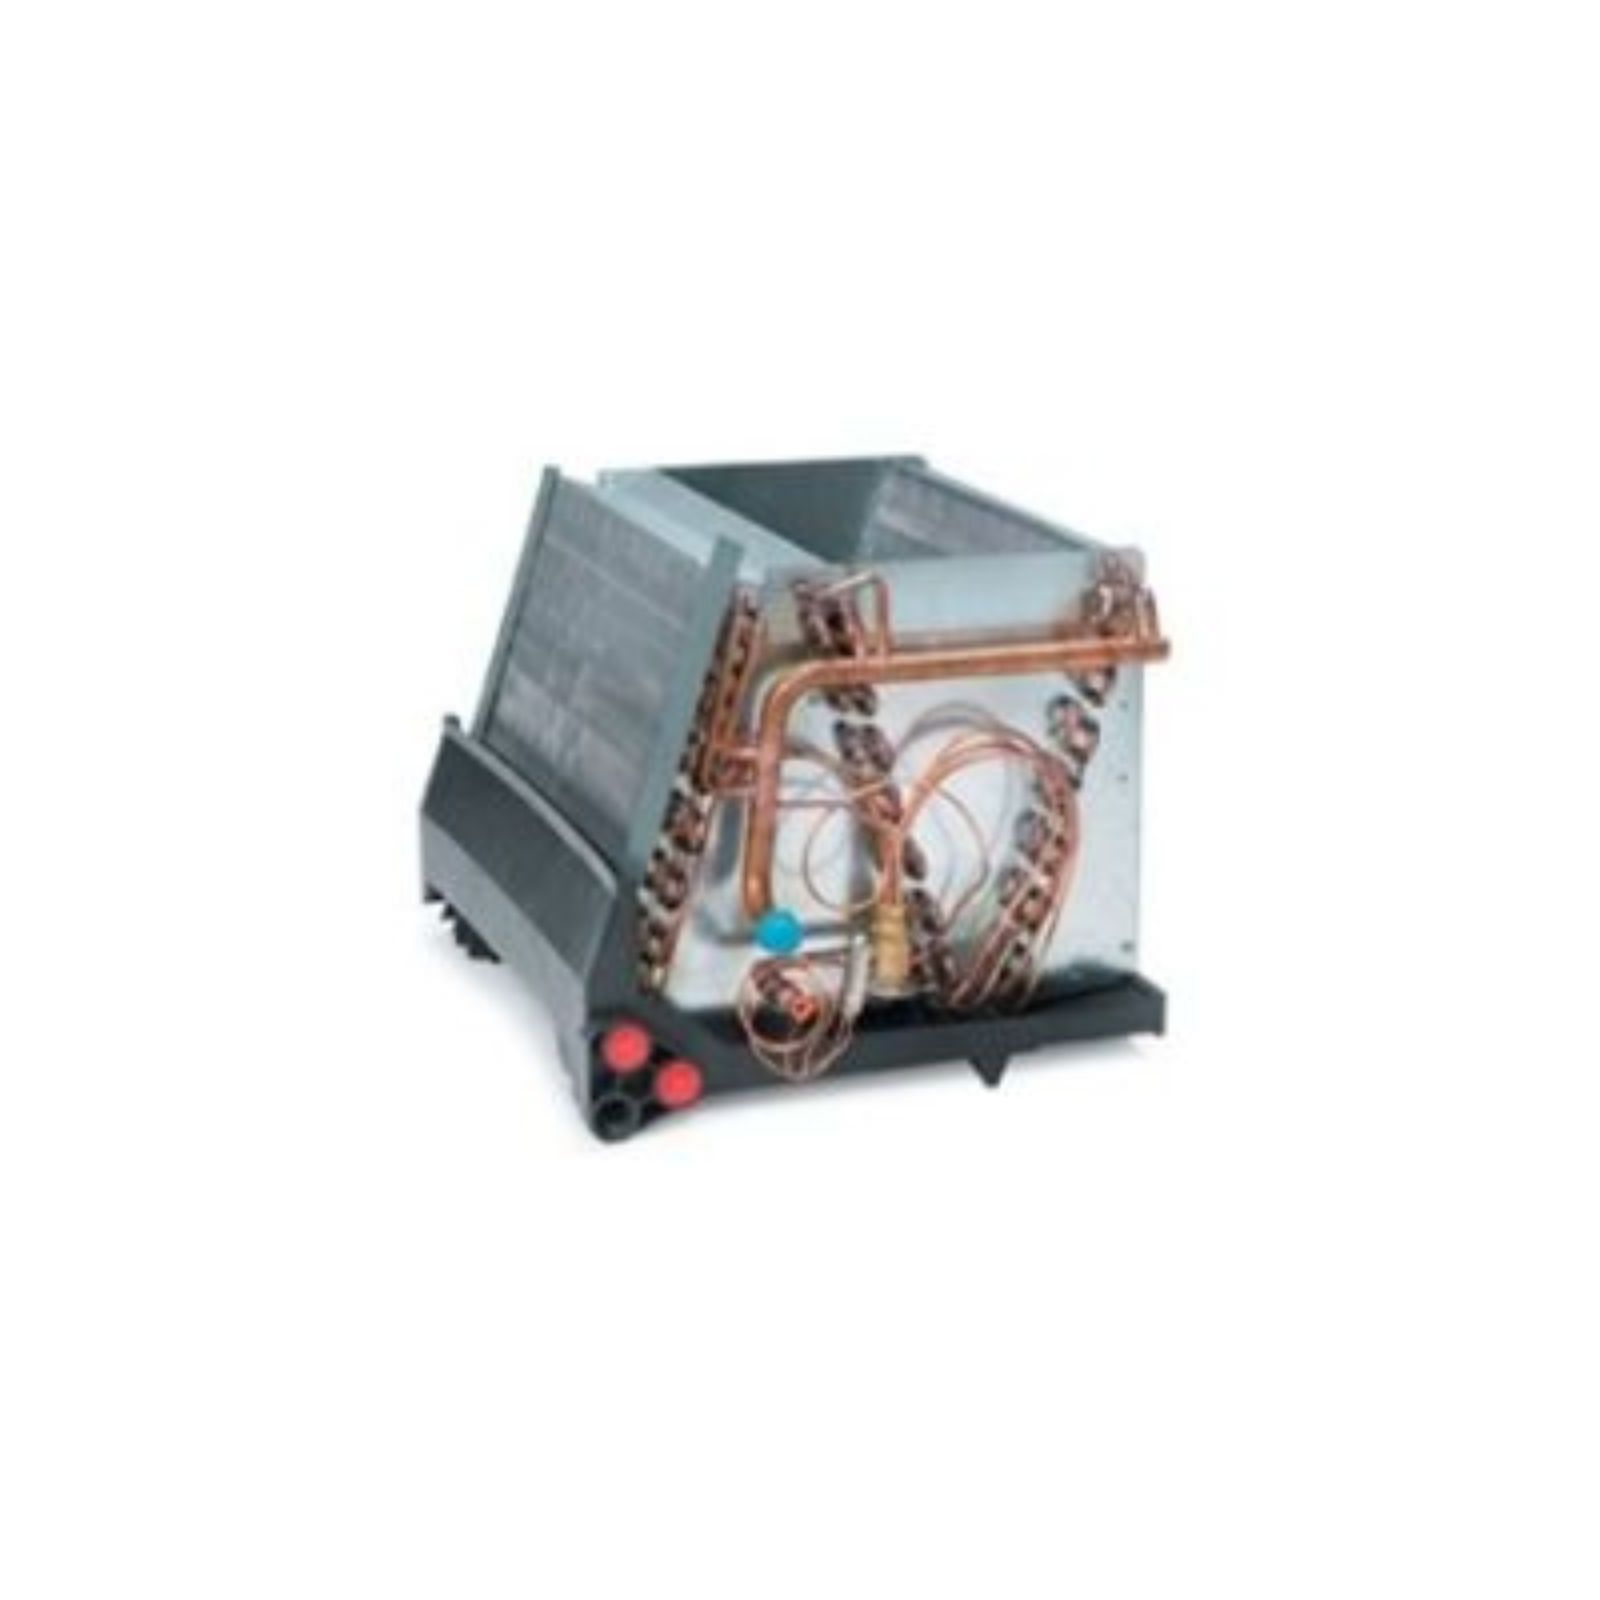 "Rheem RCSM-HU2421CU - 2 Ton 16 SEER 21"" Replacement Upflow/Downflow Uncased Coil - R410A for use in HPL Air Handlers"